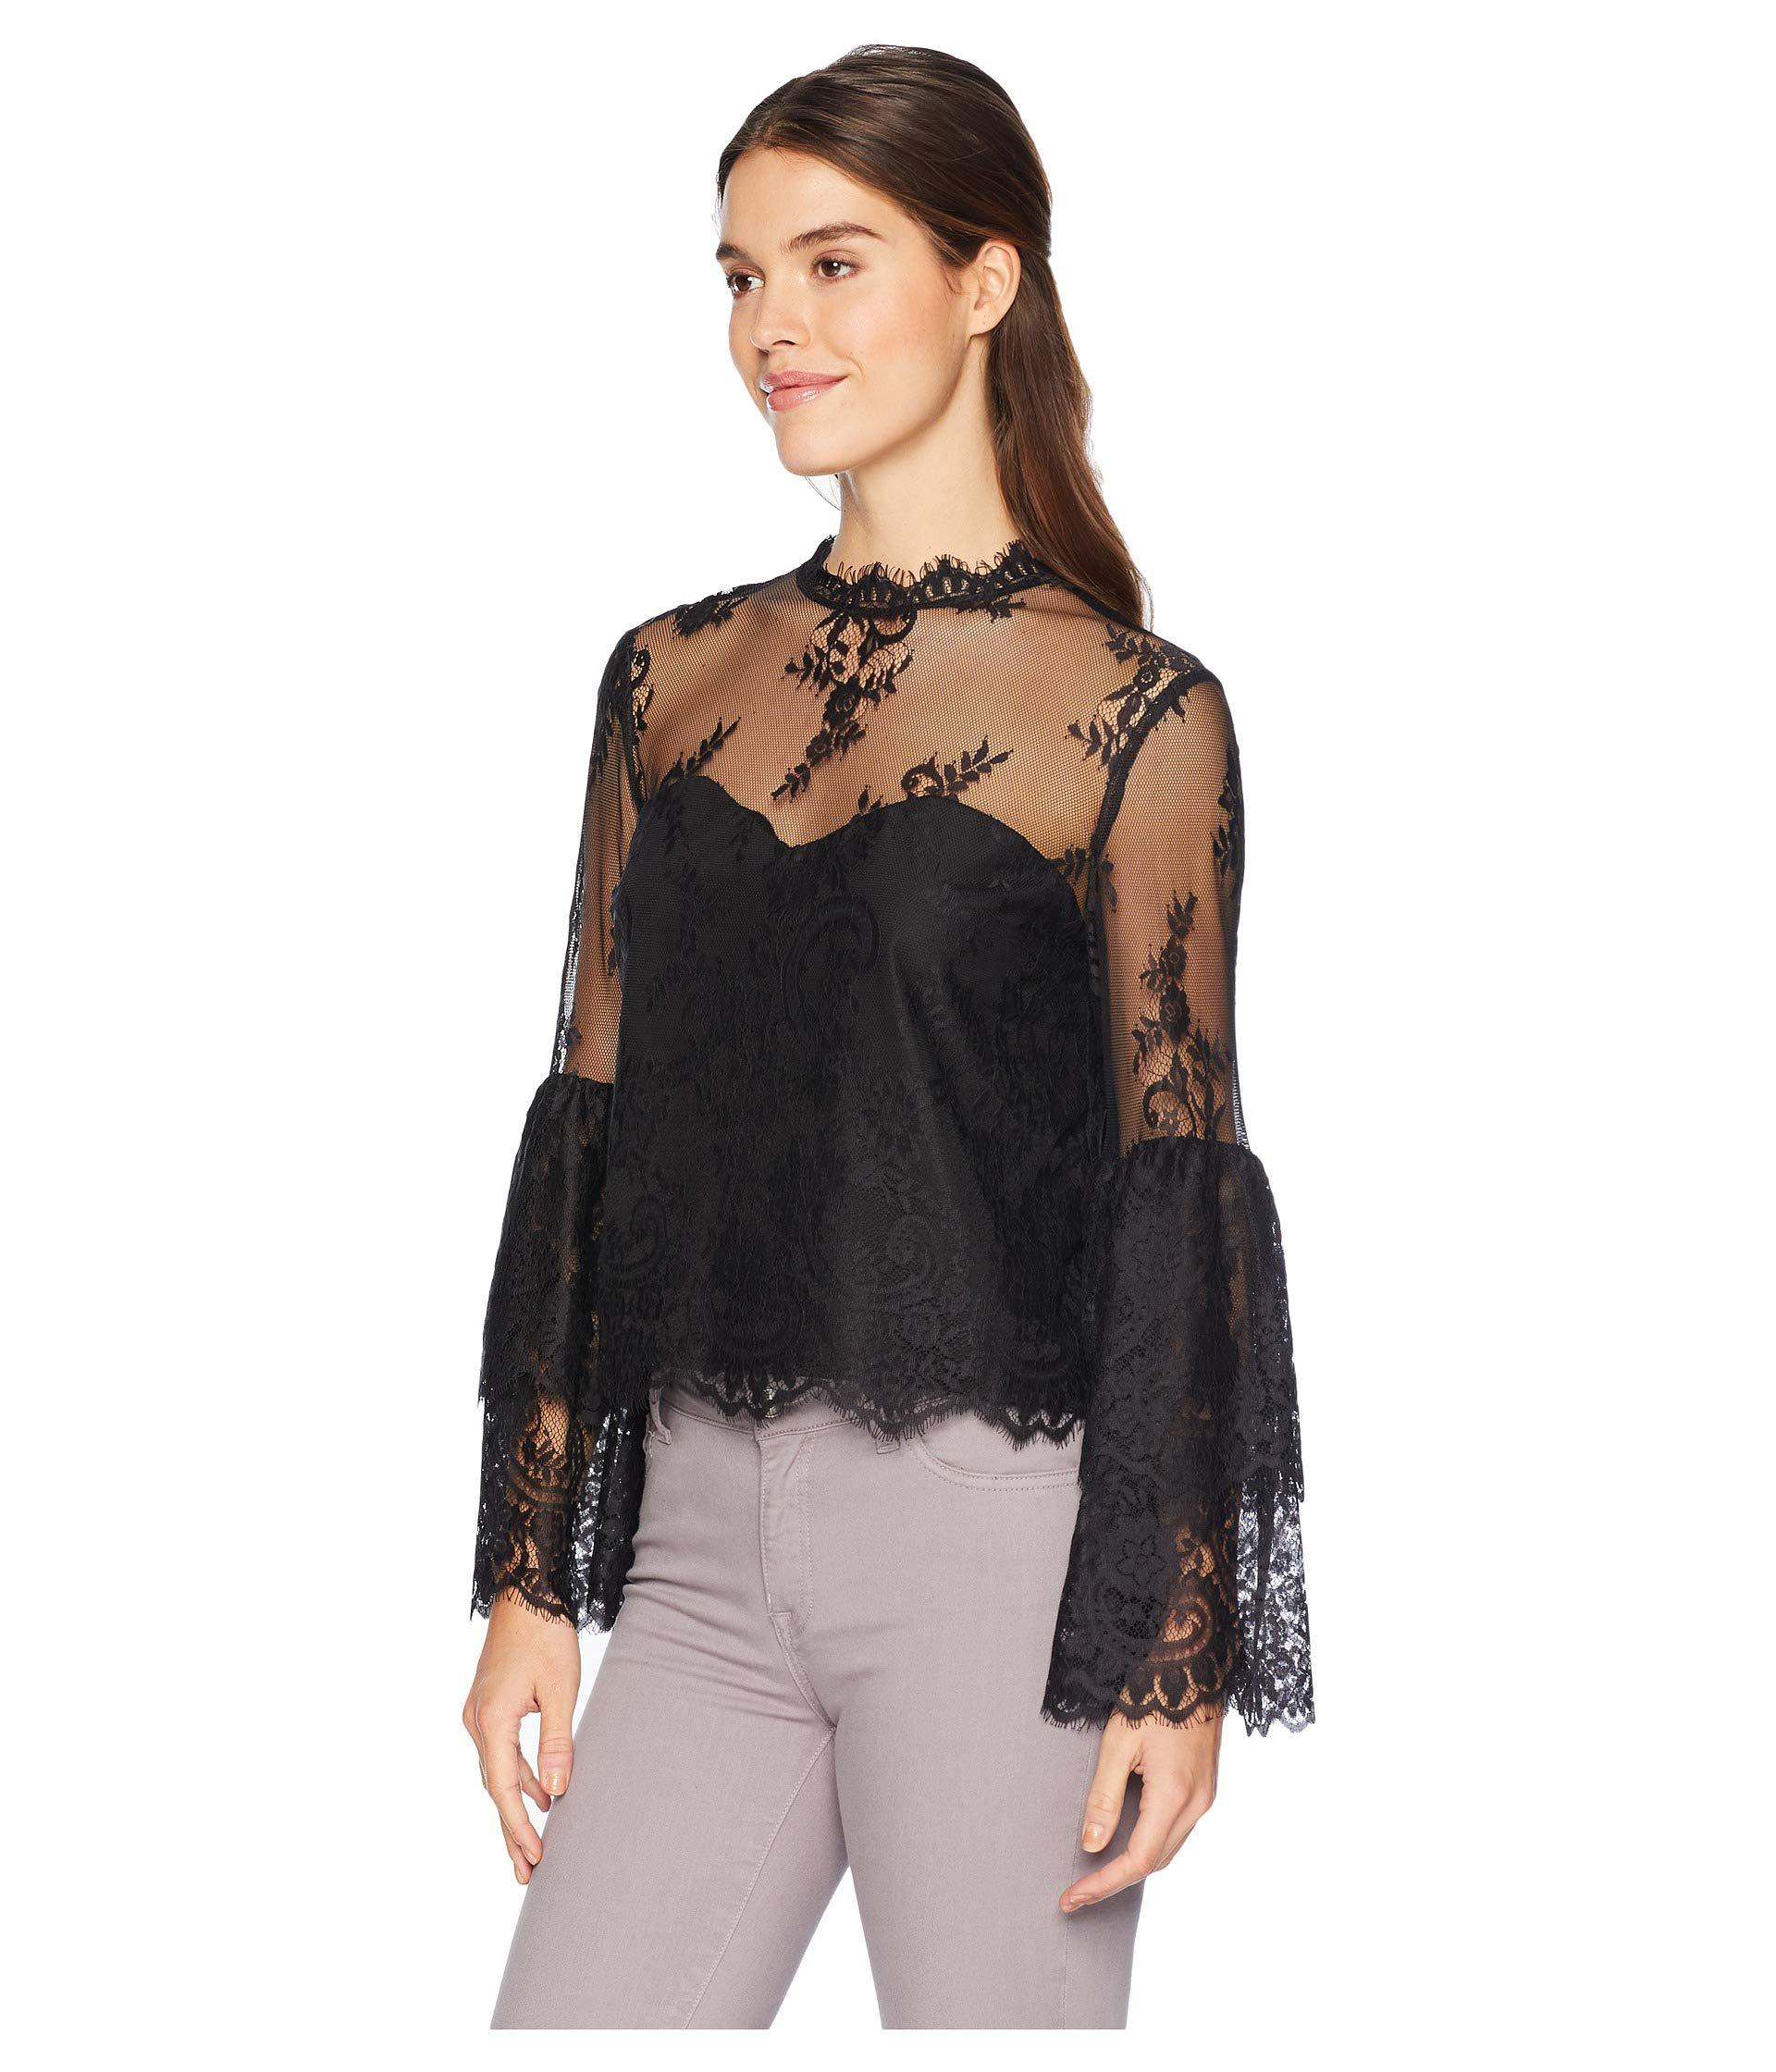 a5434f6bc8f417 Lyst - Cupcakes And Cashmere Davey Layered Lace Blouse (black) Women s  Blouse in Black